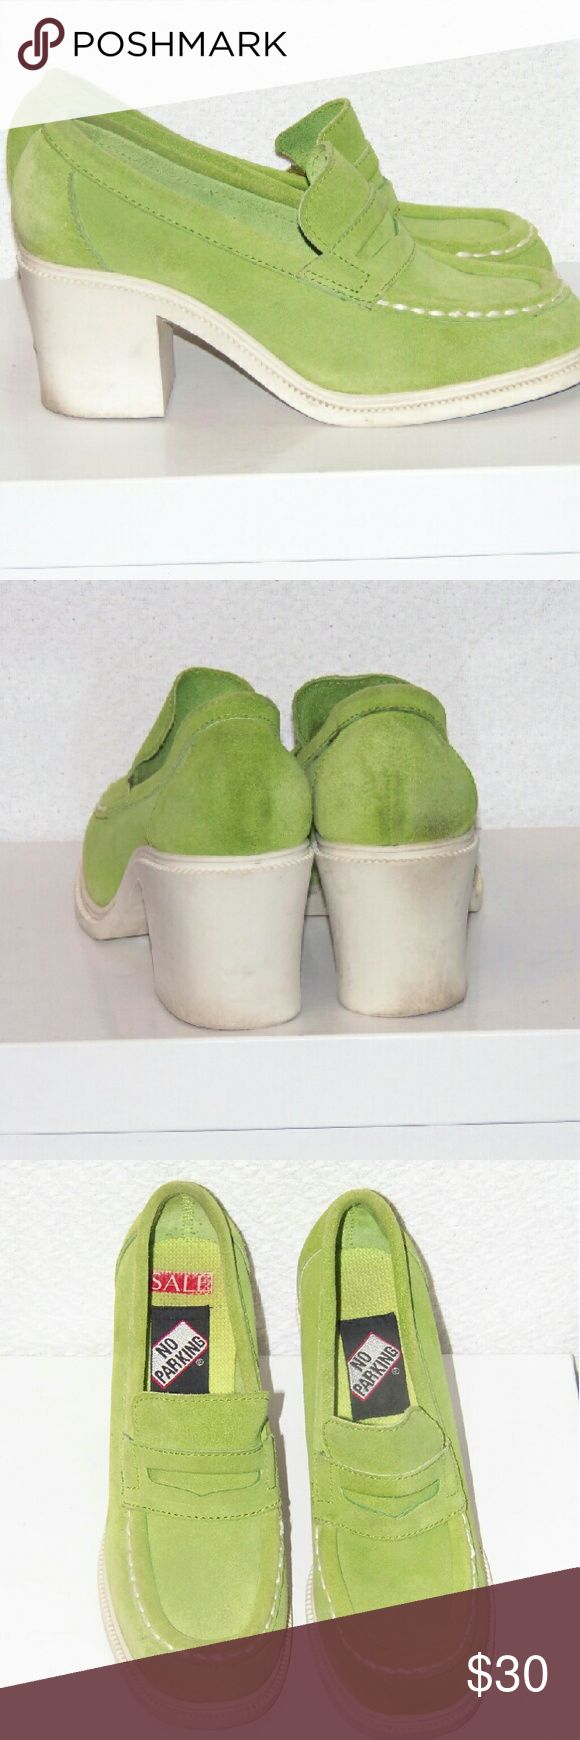 Vintage 90s No Parking Suede heeled loafers Era: Vintage 90s  Brand: No Parking Worn Lightly Chunky Heel Rubber Sole 100% Genuine Suede Lime Green Upper Loafer Style 2 in heel No Parking Shoes Platforms